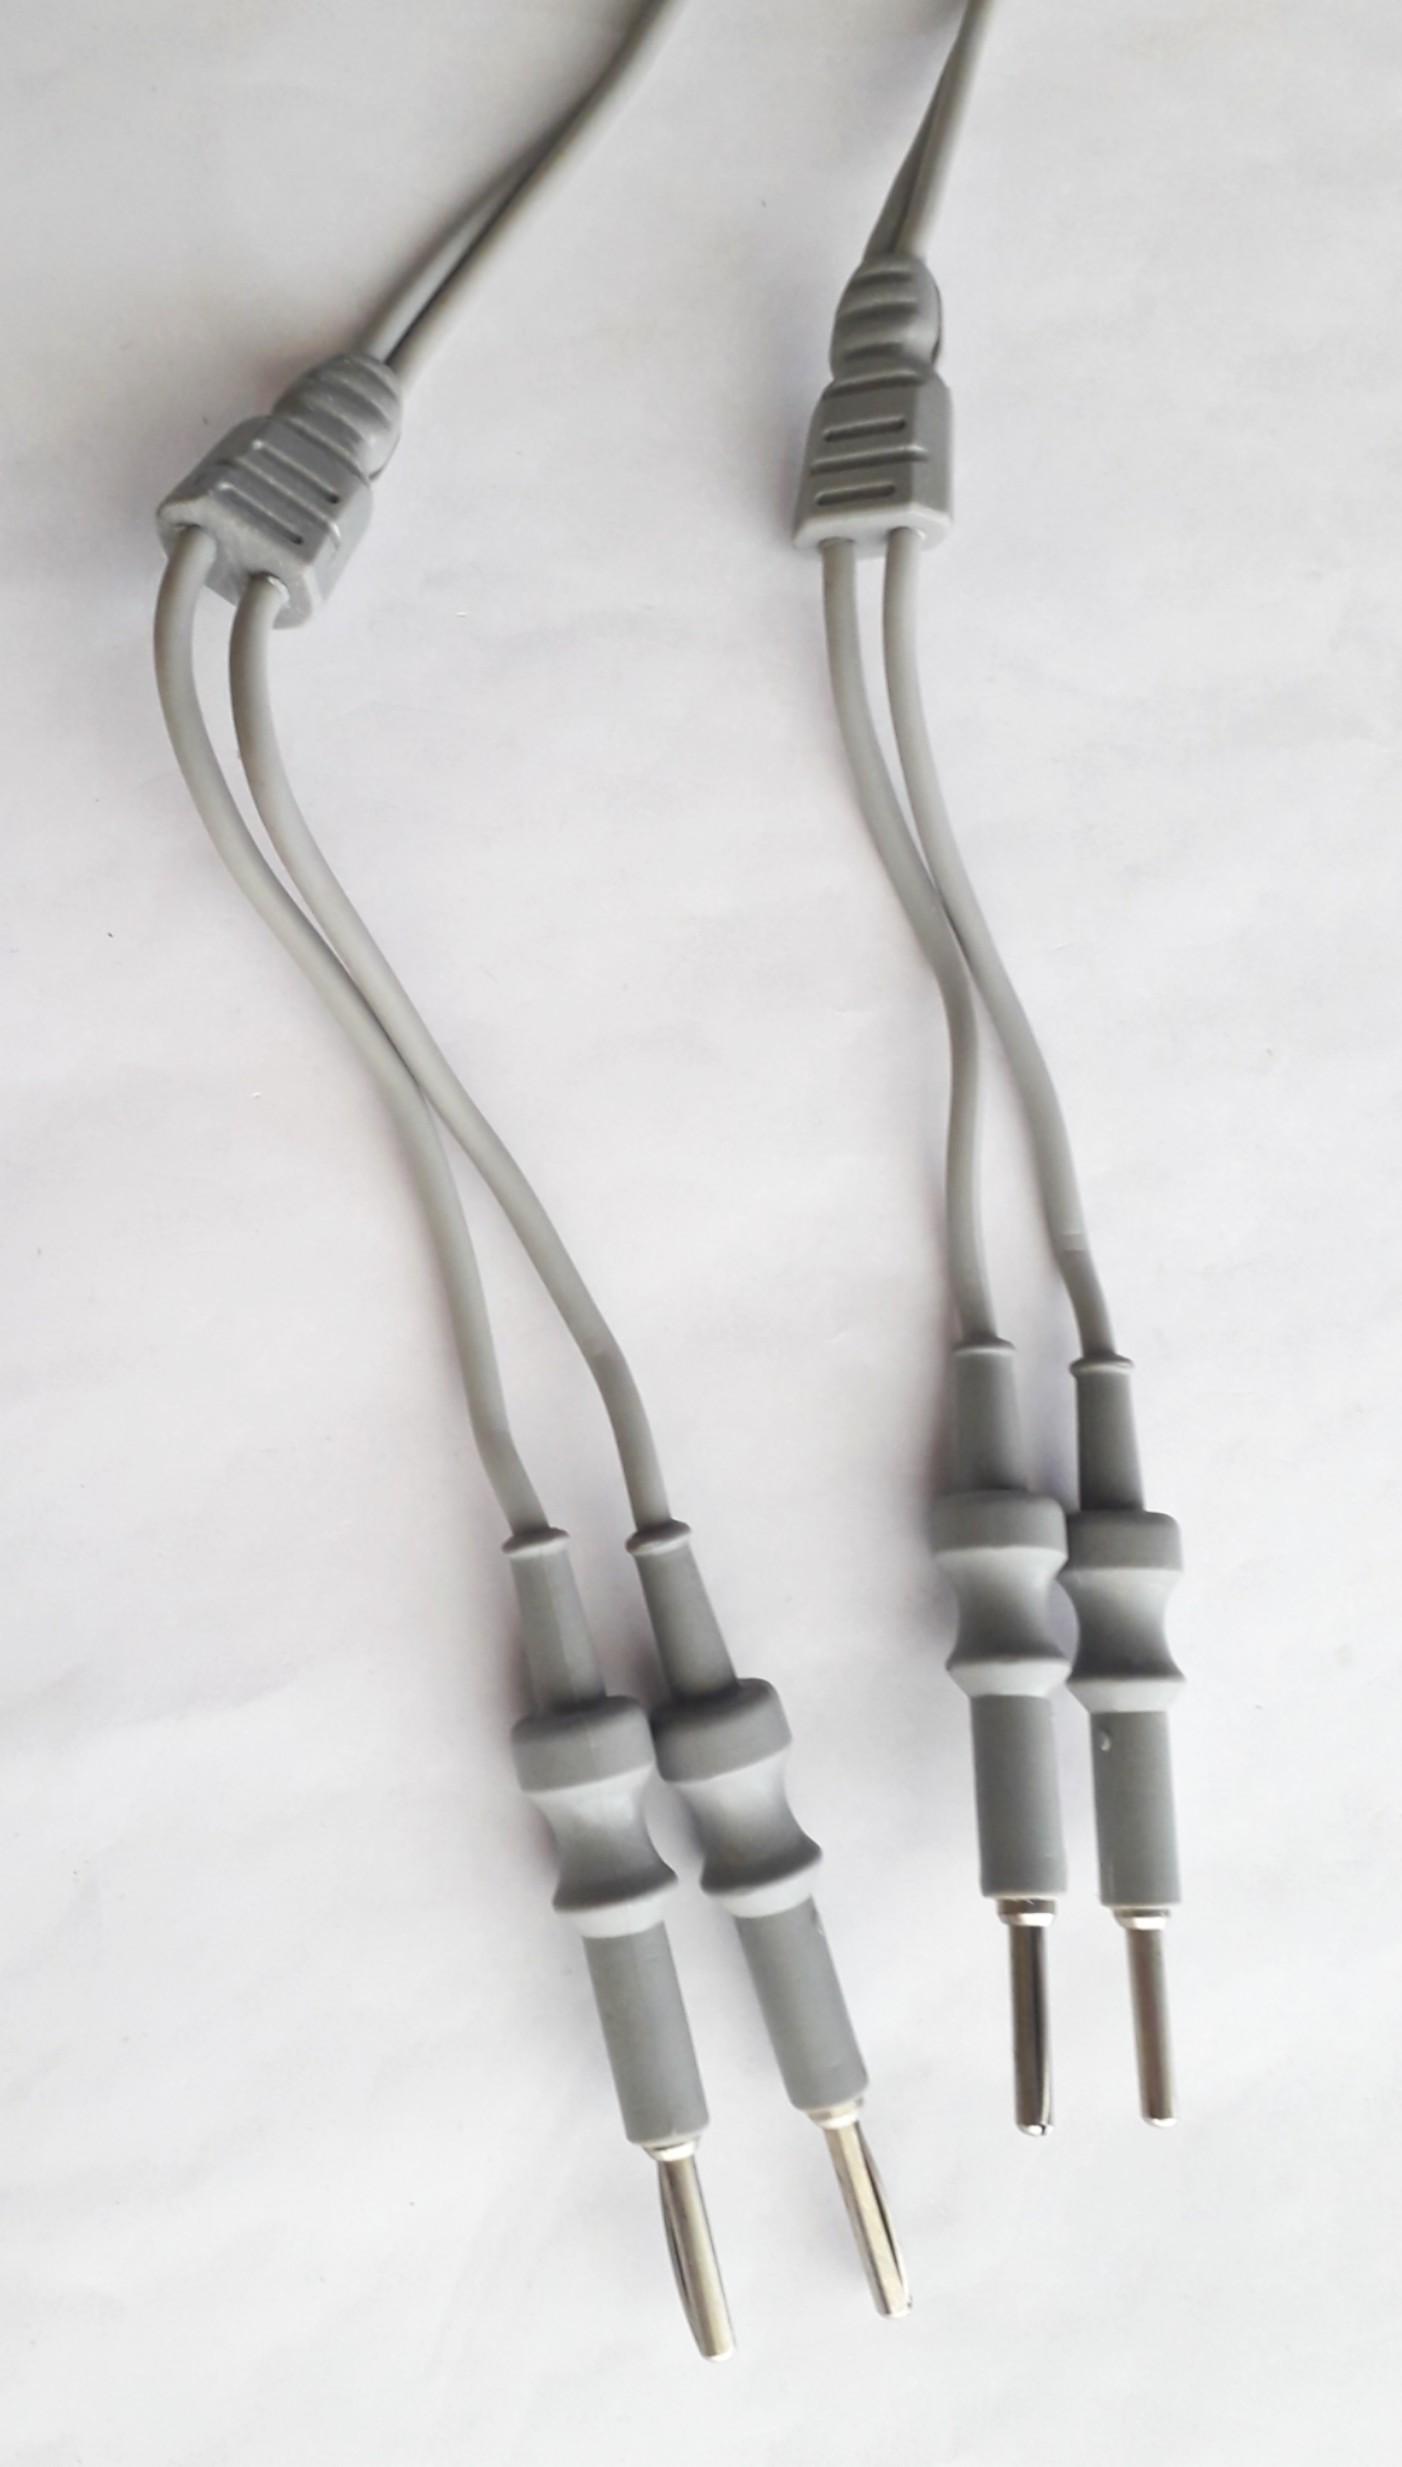 Patient Plate Cable Cord